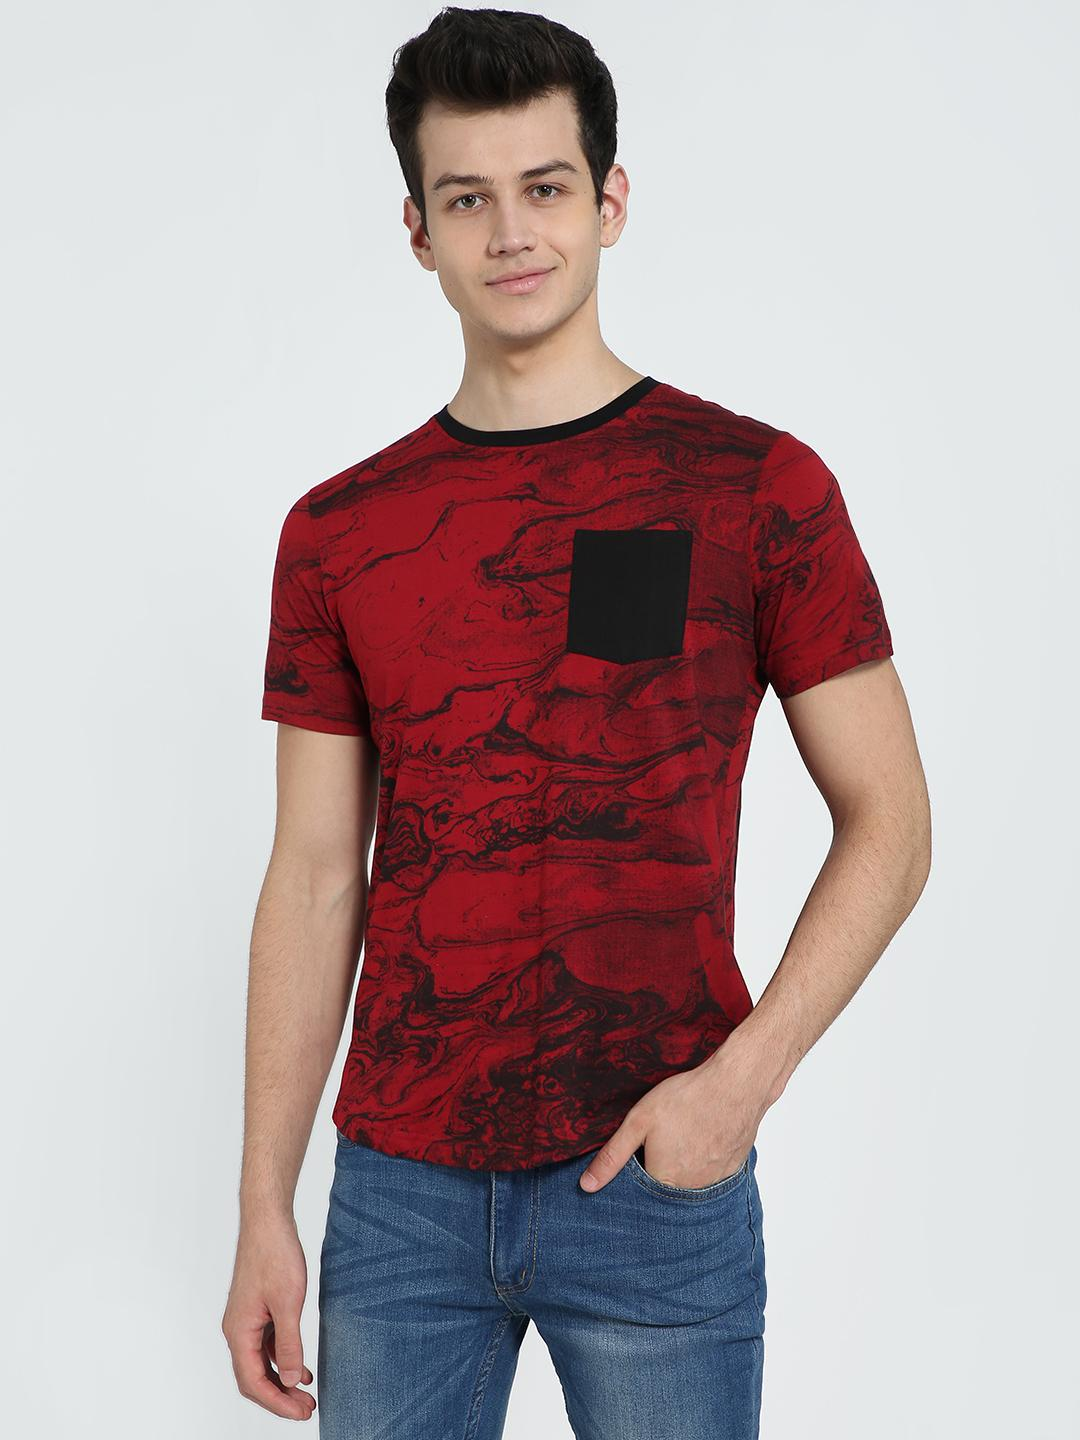 IMPACKT Maroon Patch Pocket Printed Crew Neck T-Shirt 1